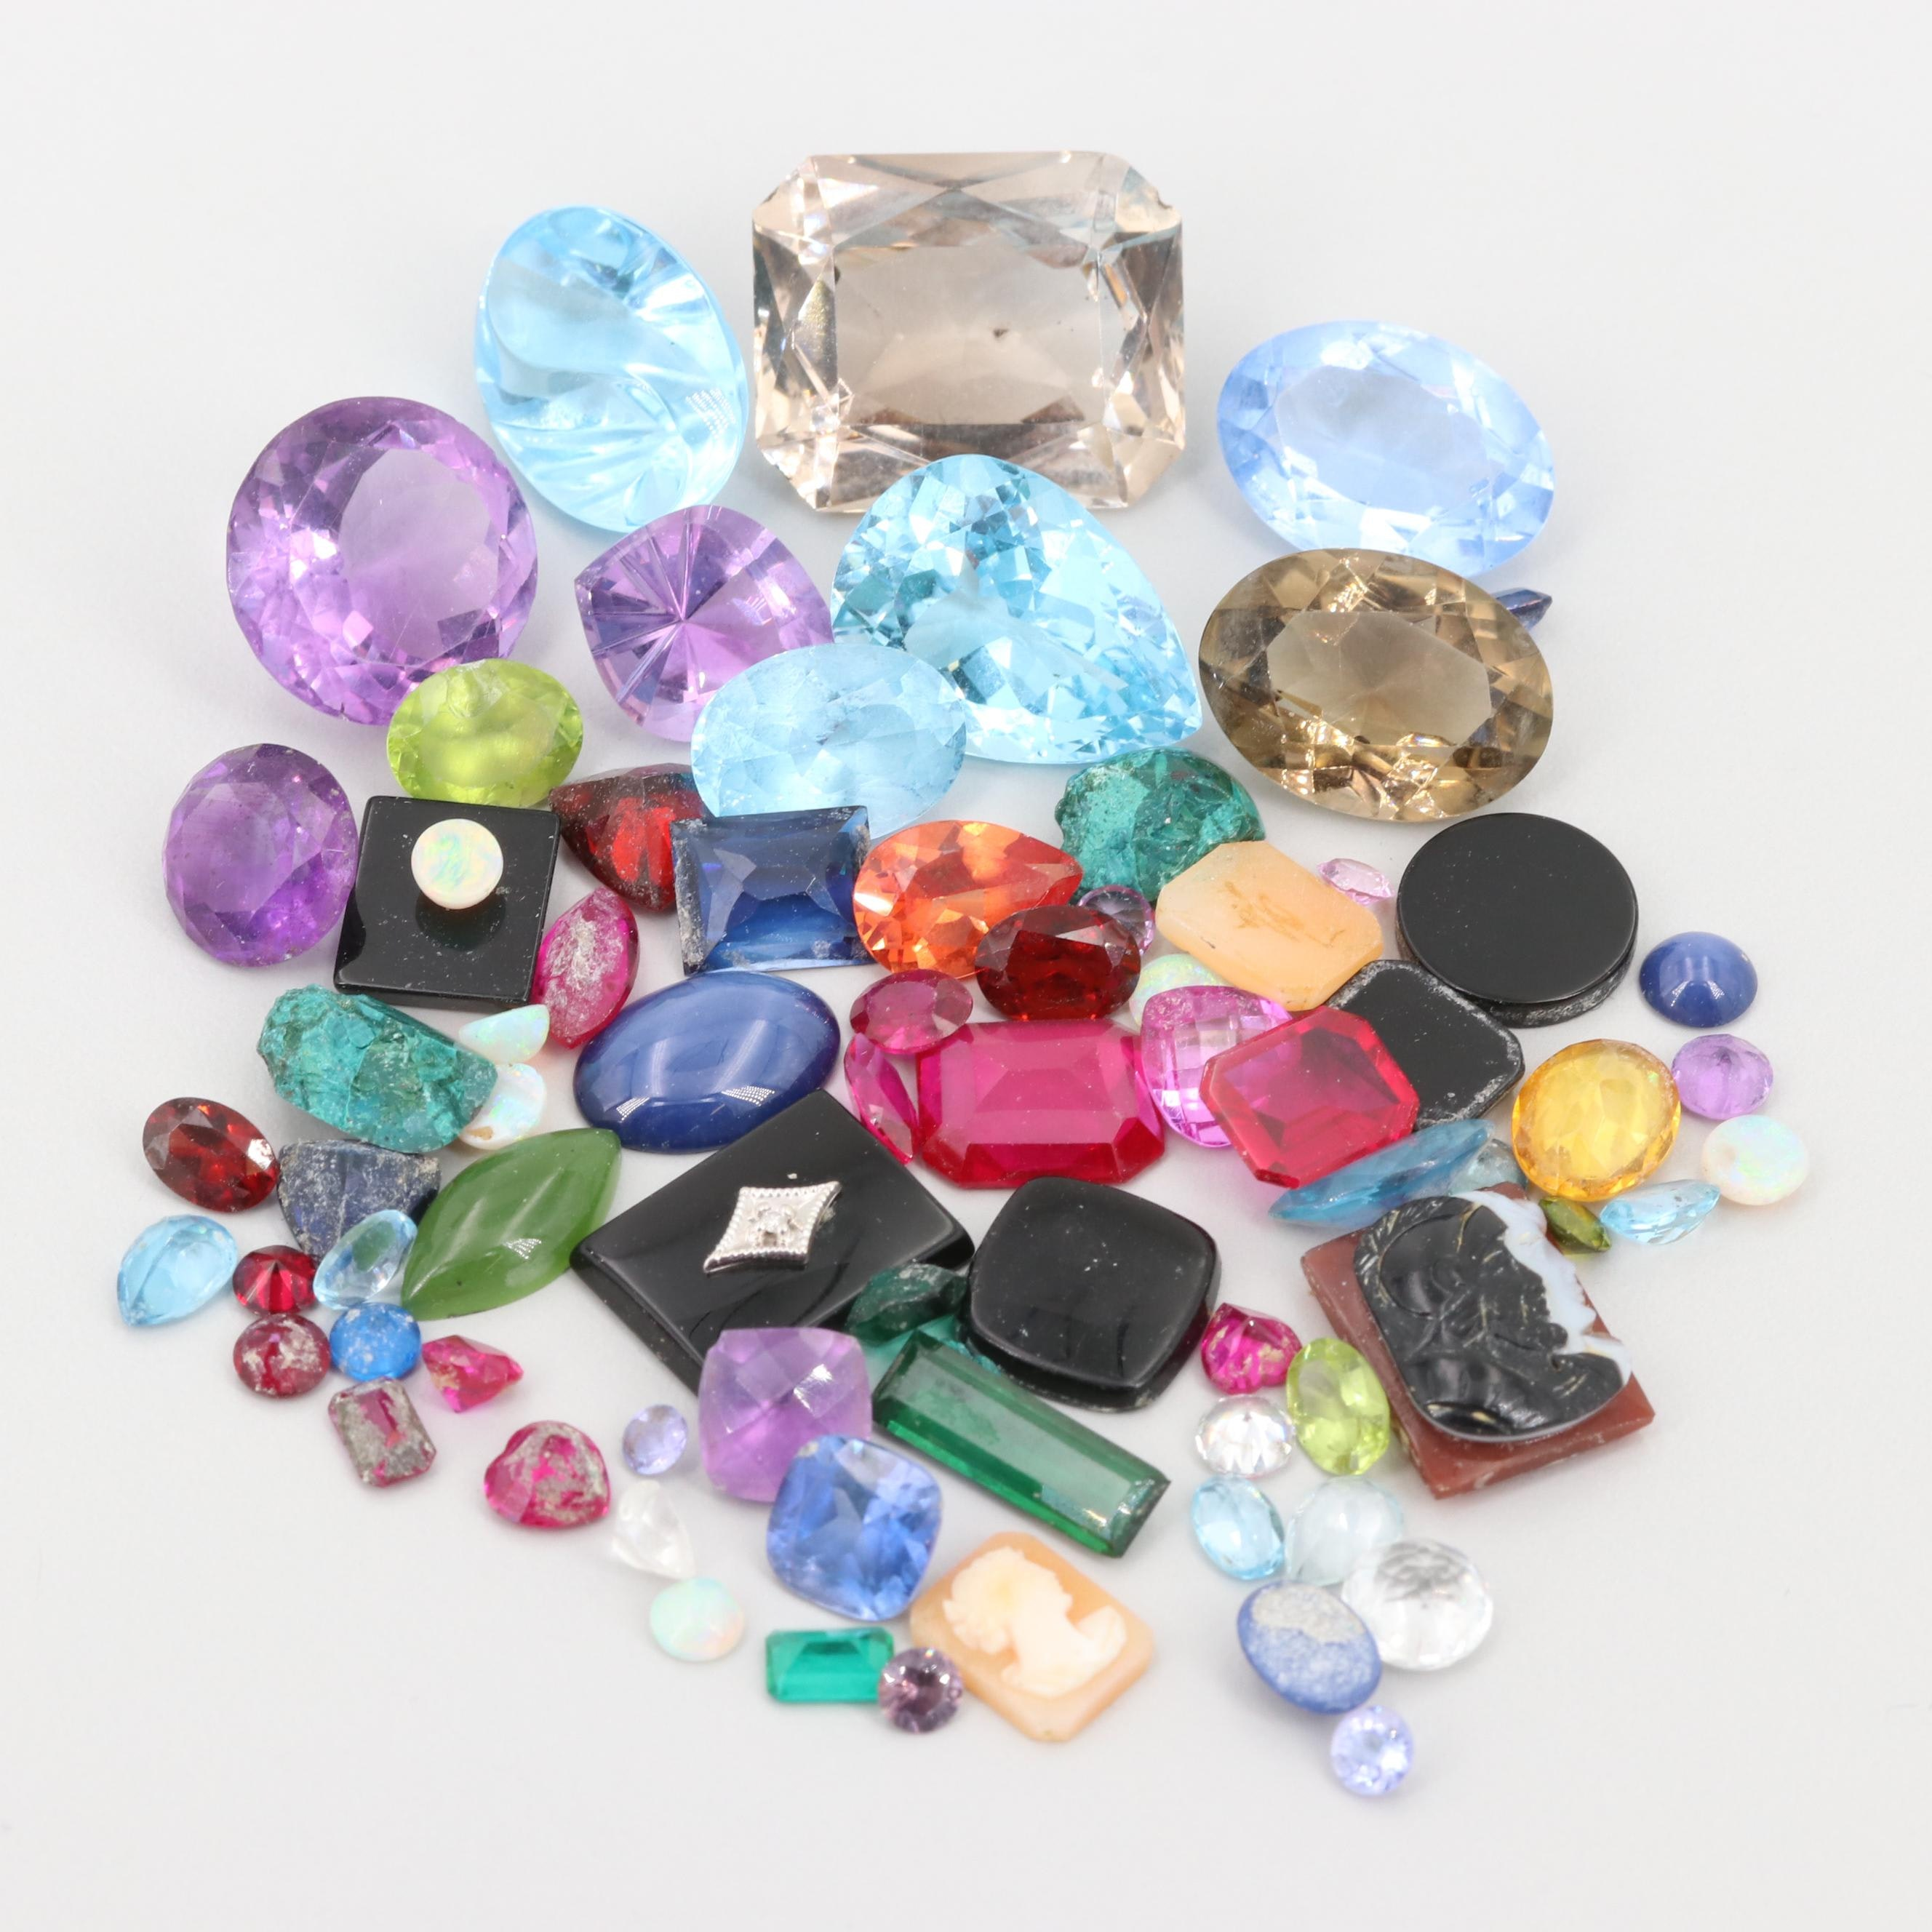 Loose 2.36.25 CTW Gemstone Assortment Including Diamond, Synthetic Ruby and 10K